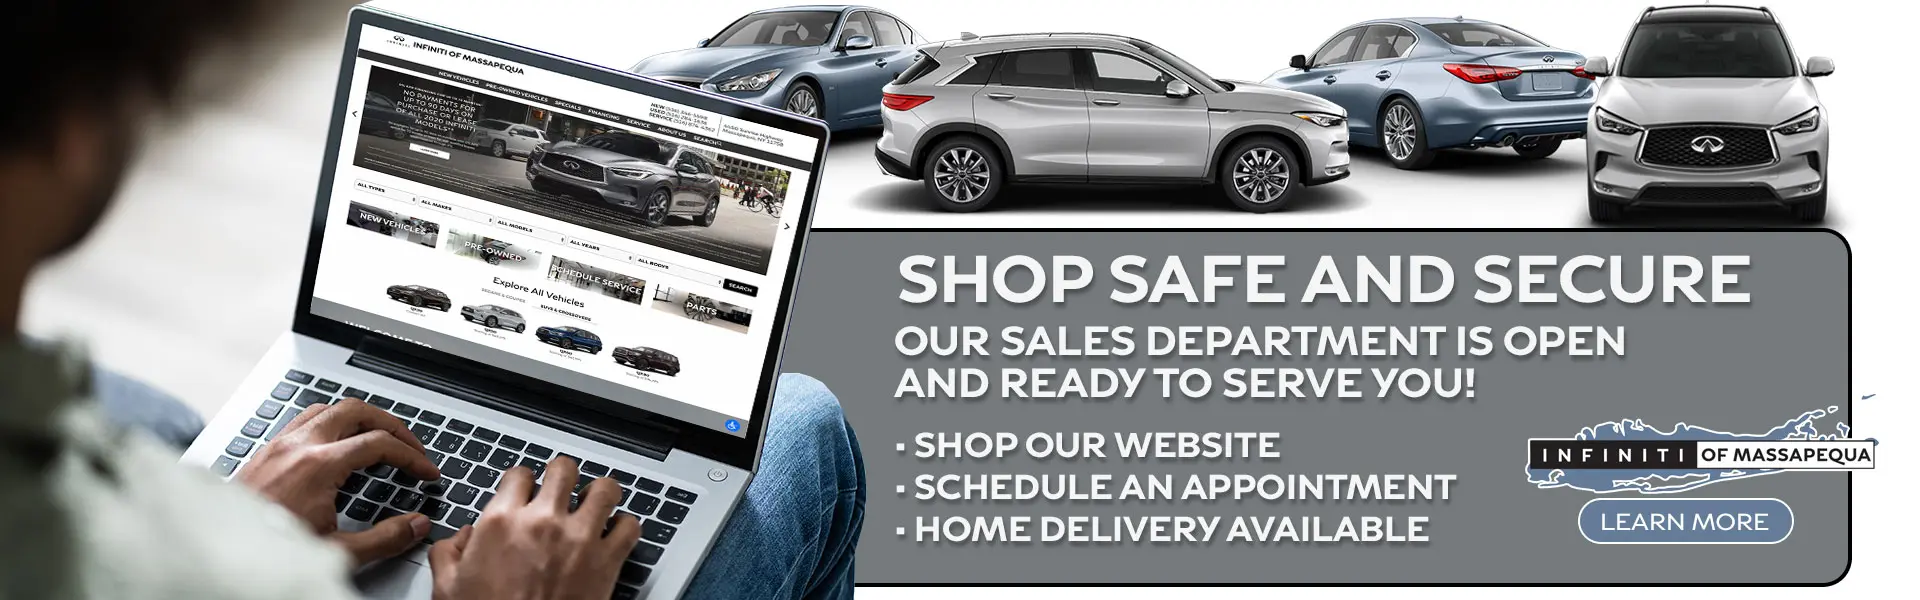 Shop Safe and Secure